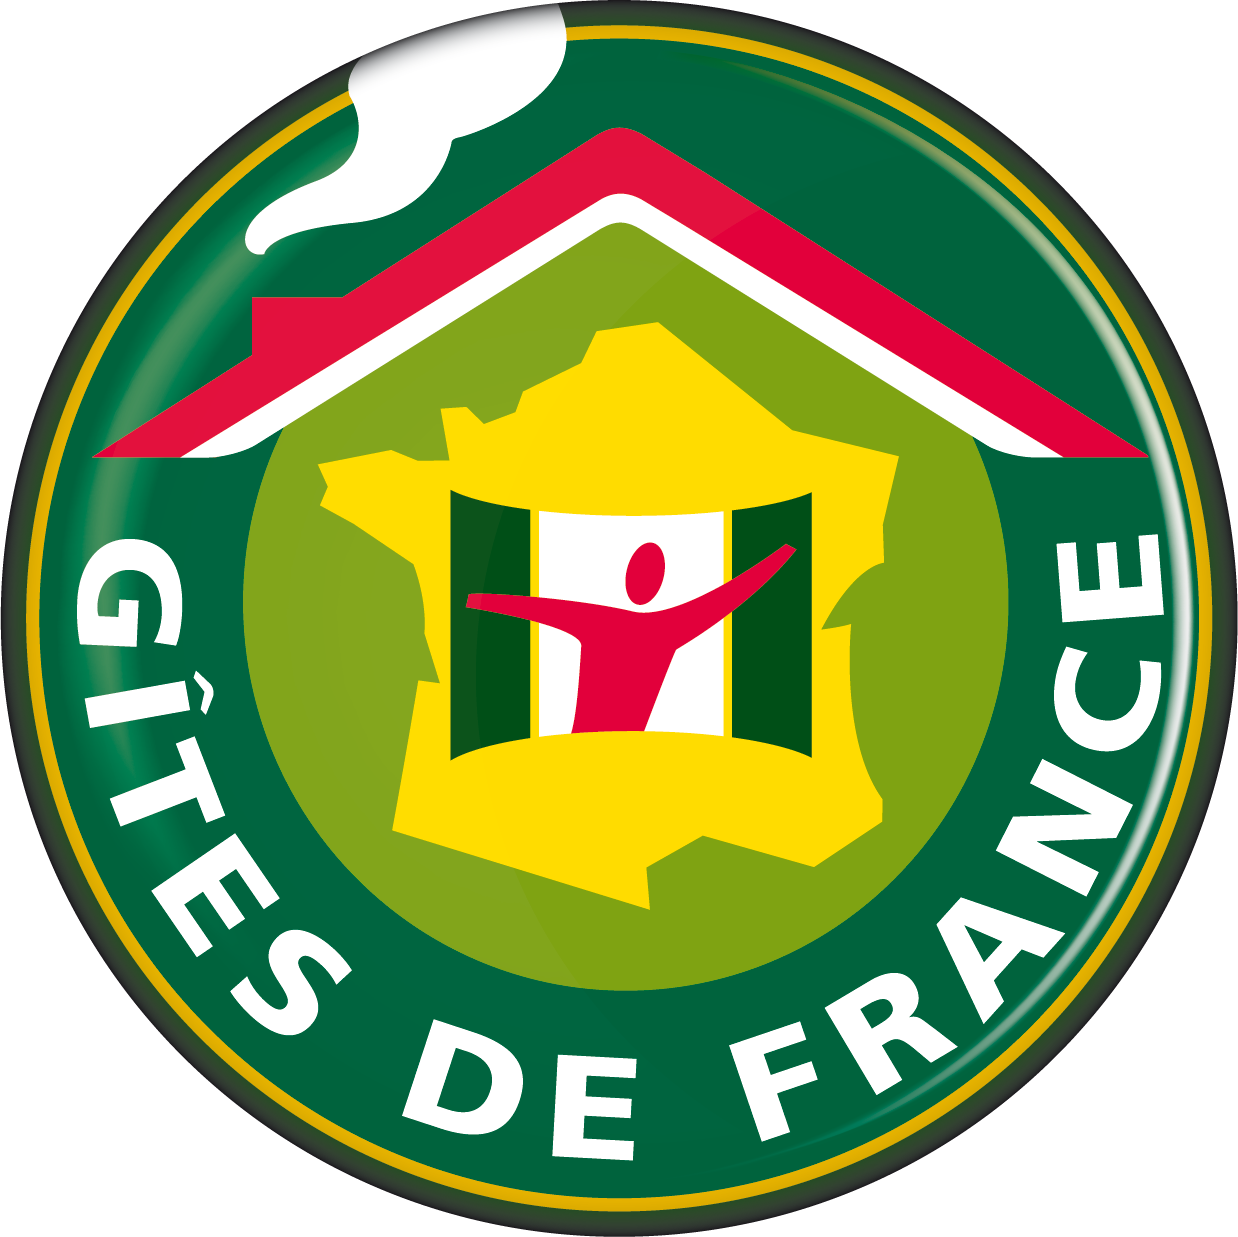 G_tes_de_France_logo_2008_converted